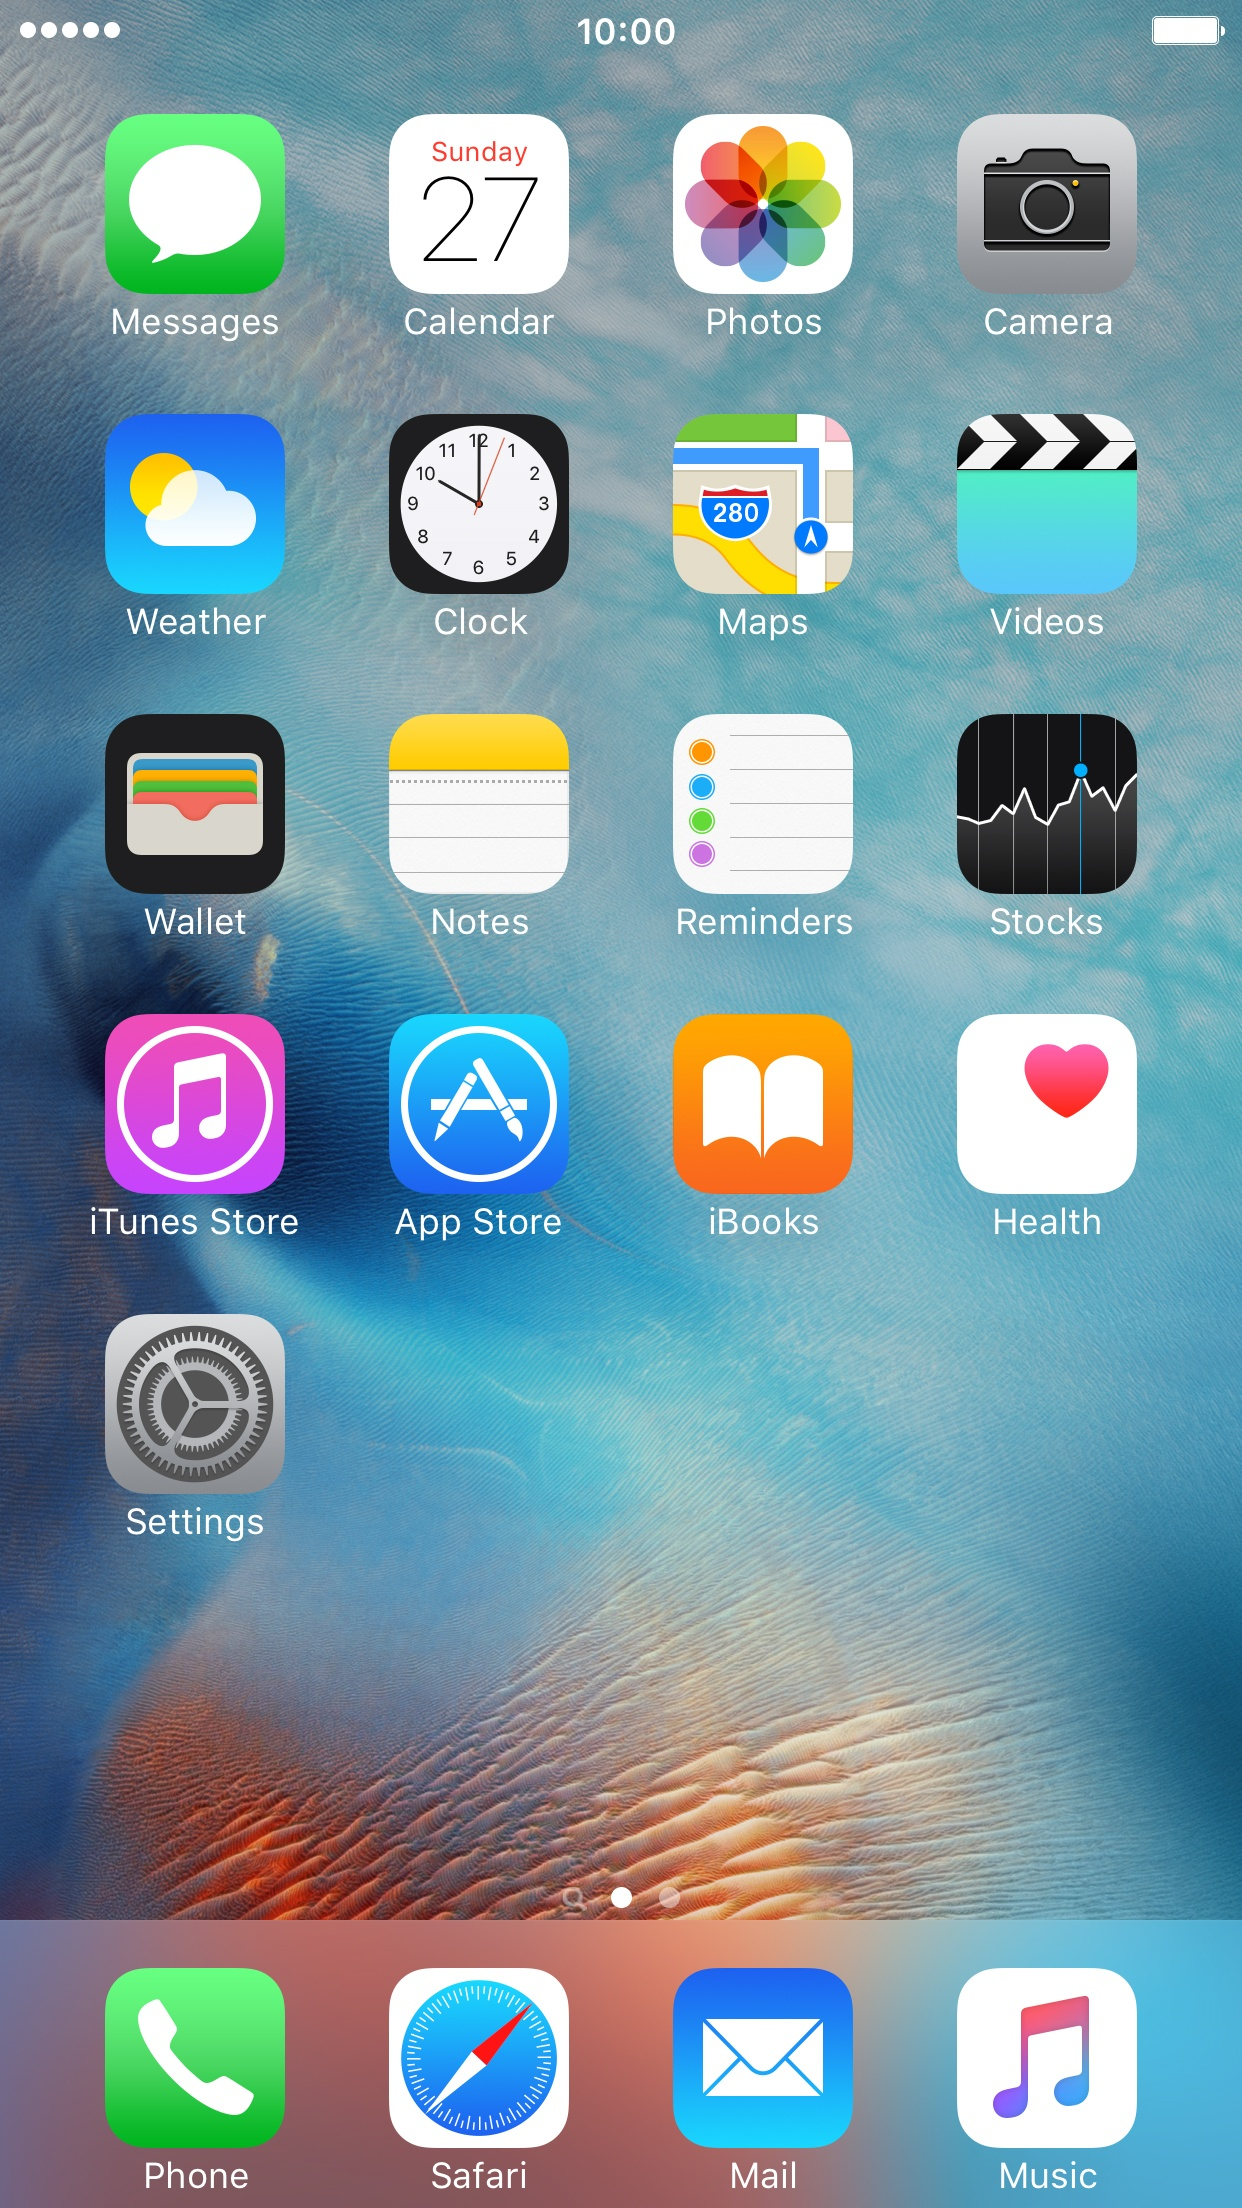 how to set up xchange email iphone 6